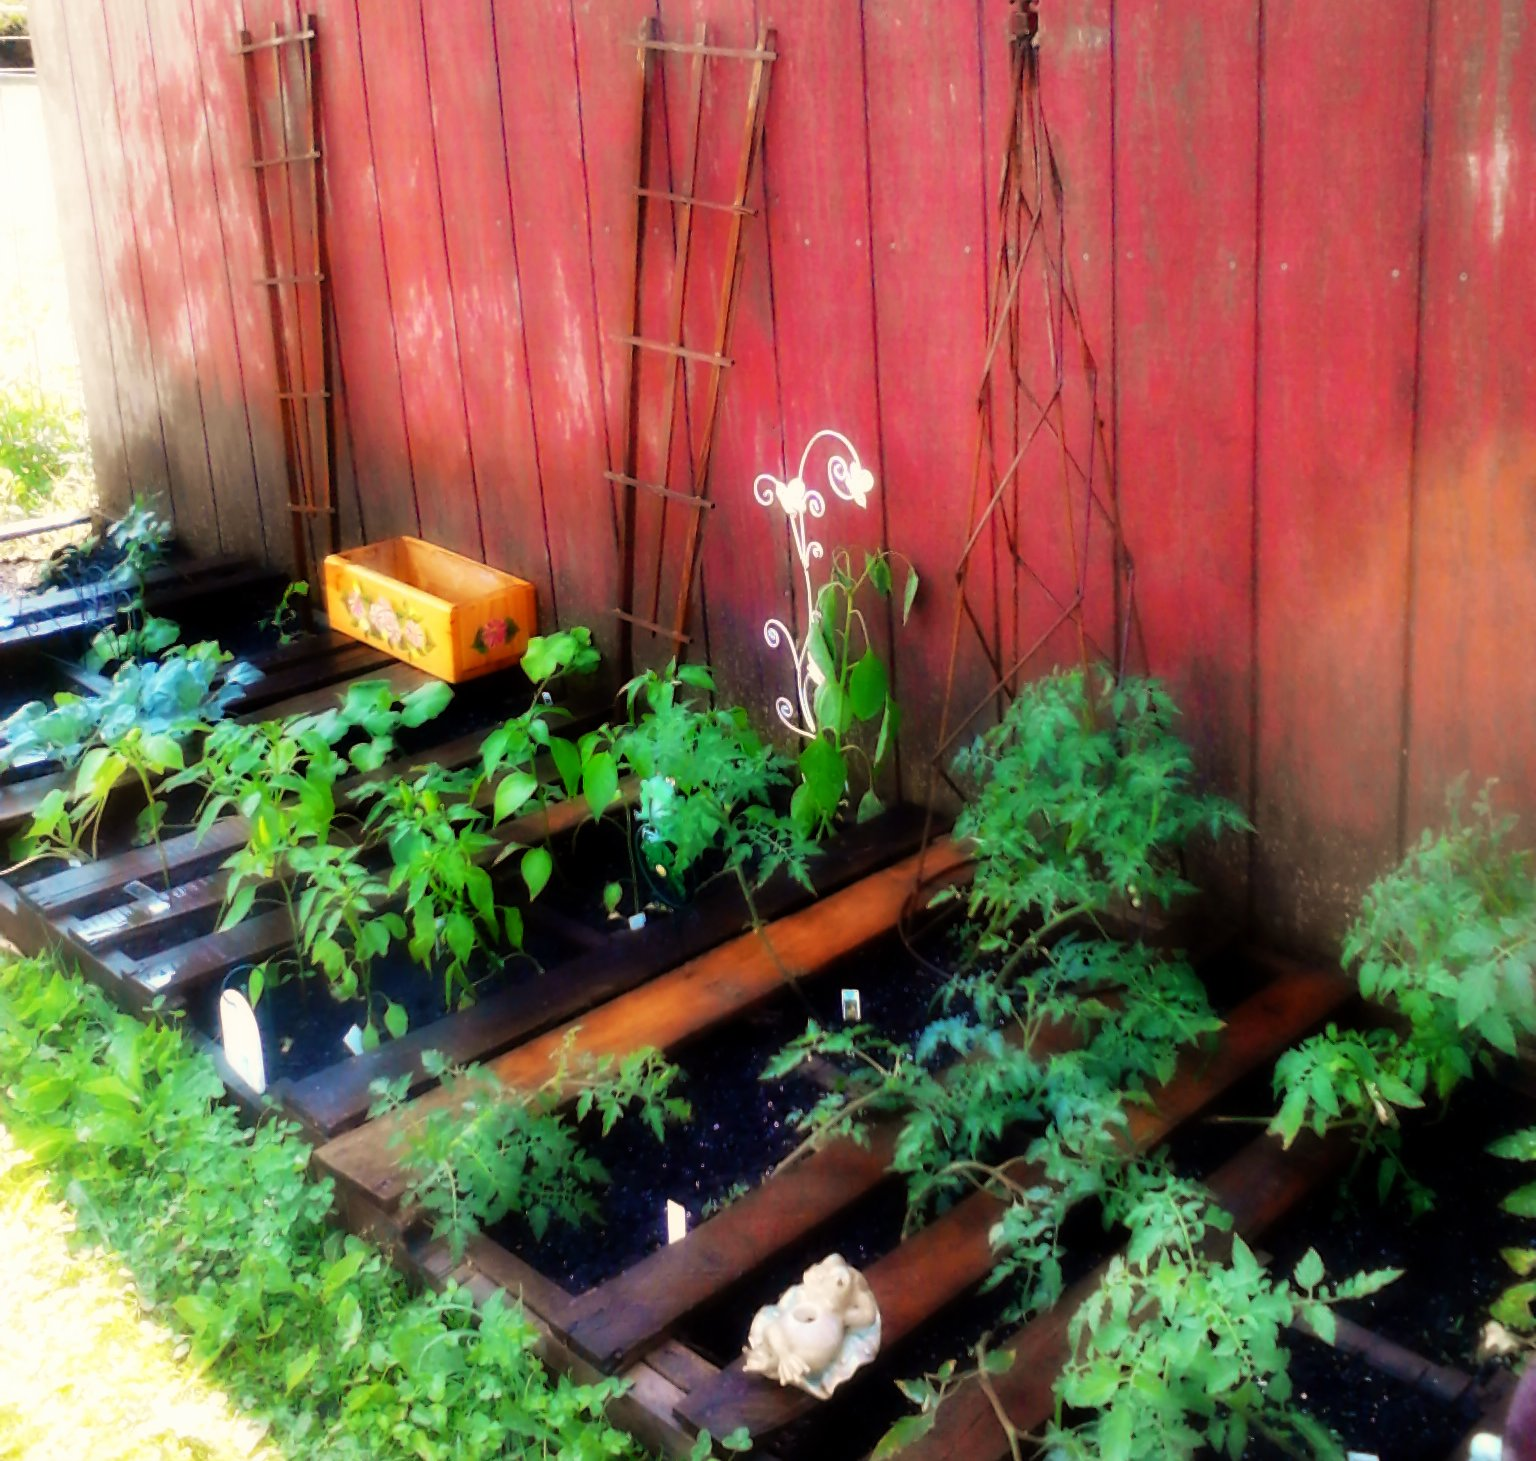 Pallet Veggie Garden: April's Country Life: My Pinterest Pallet Garden